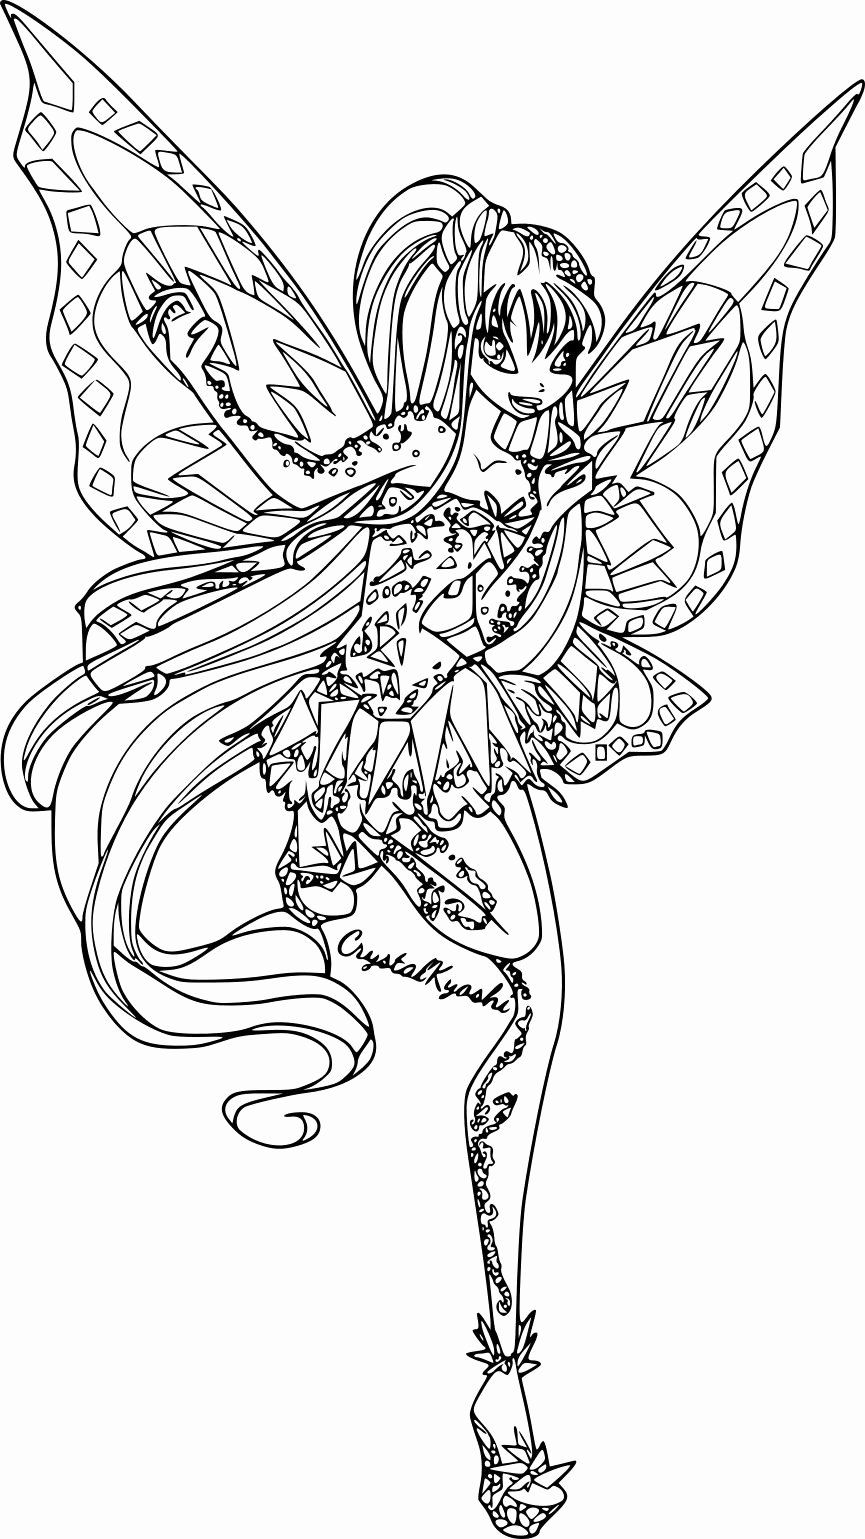 Digital Coloring Anime Best Of Girl Vampire Coloring Pages Luxury Pin By Monica Johnson On Pencilmein Mermaid Coloring Pages Coloring Pages Cute Coloring Pages